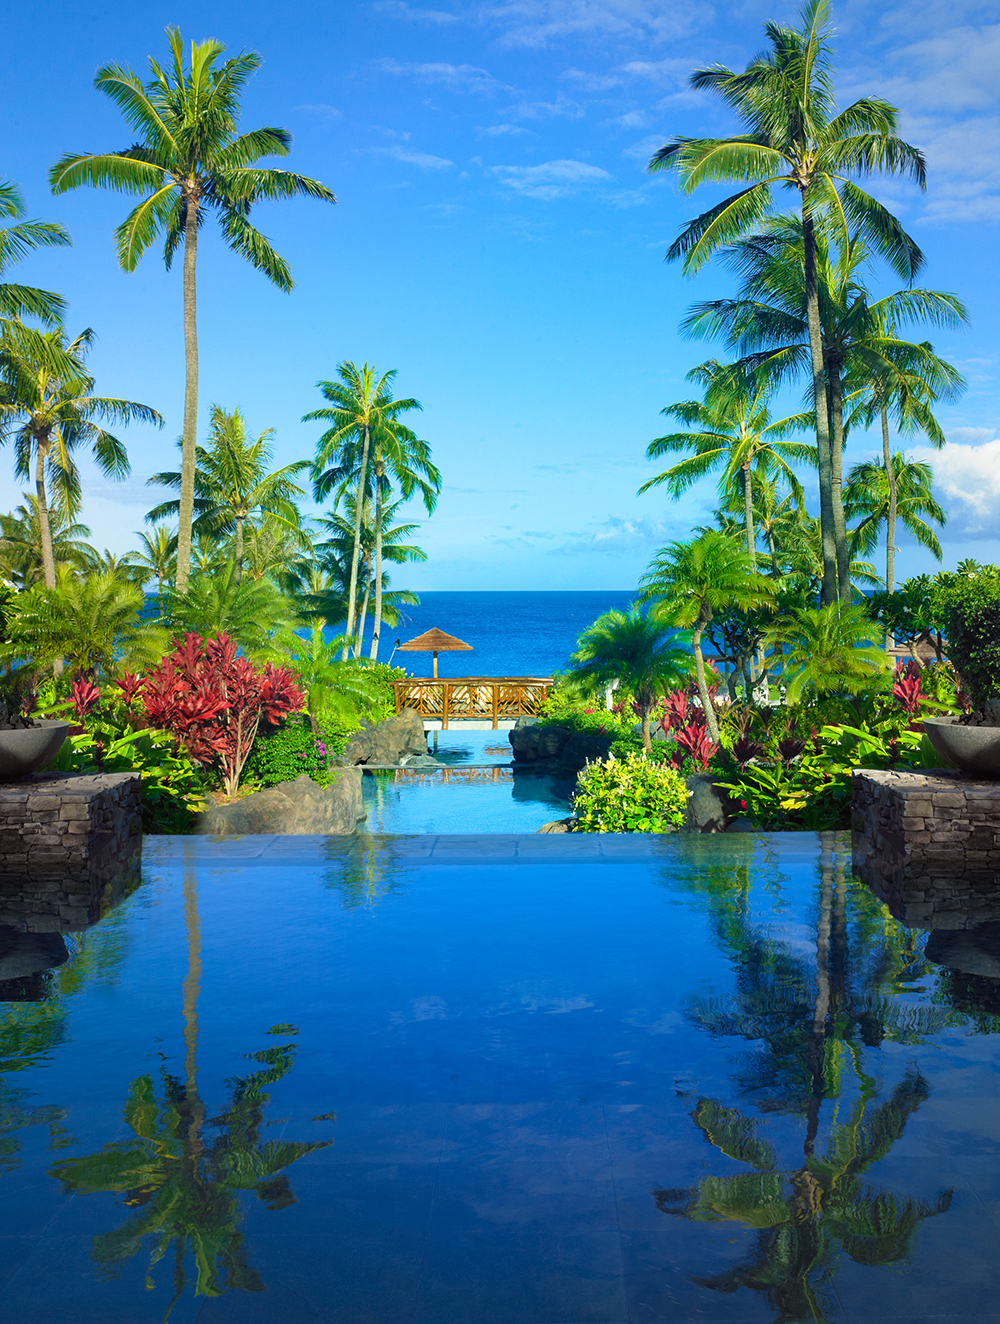 Located in the northwest part of Maui, Montage Kapalua Bay is a luxury resort set along the picturesque waters of Namalu Bay.